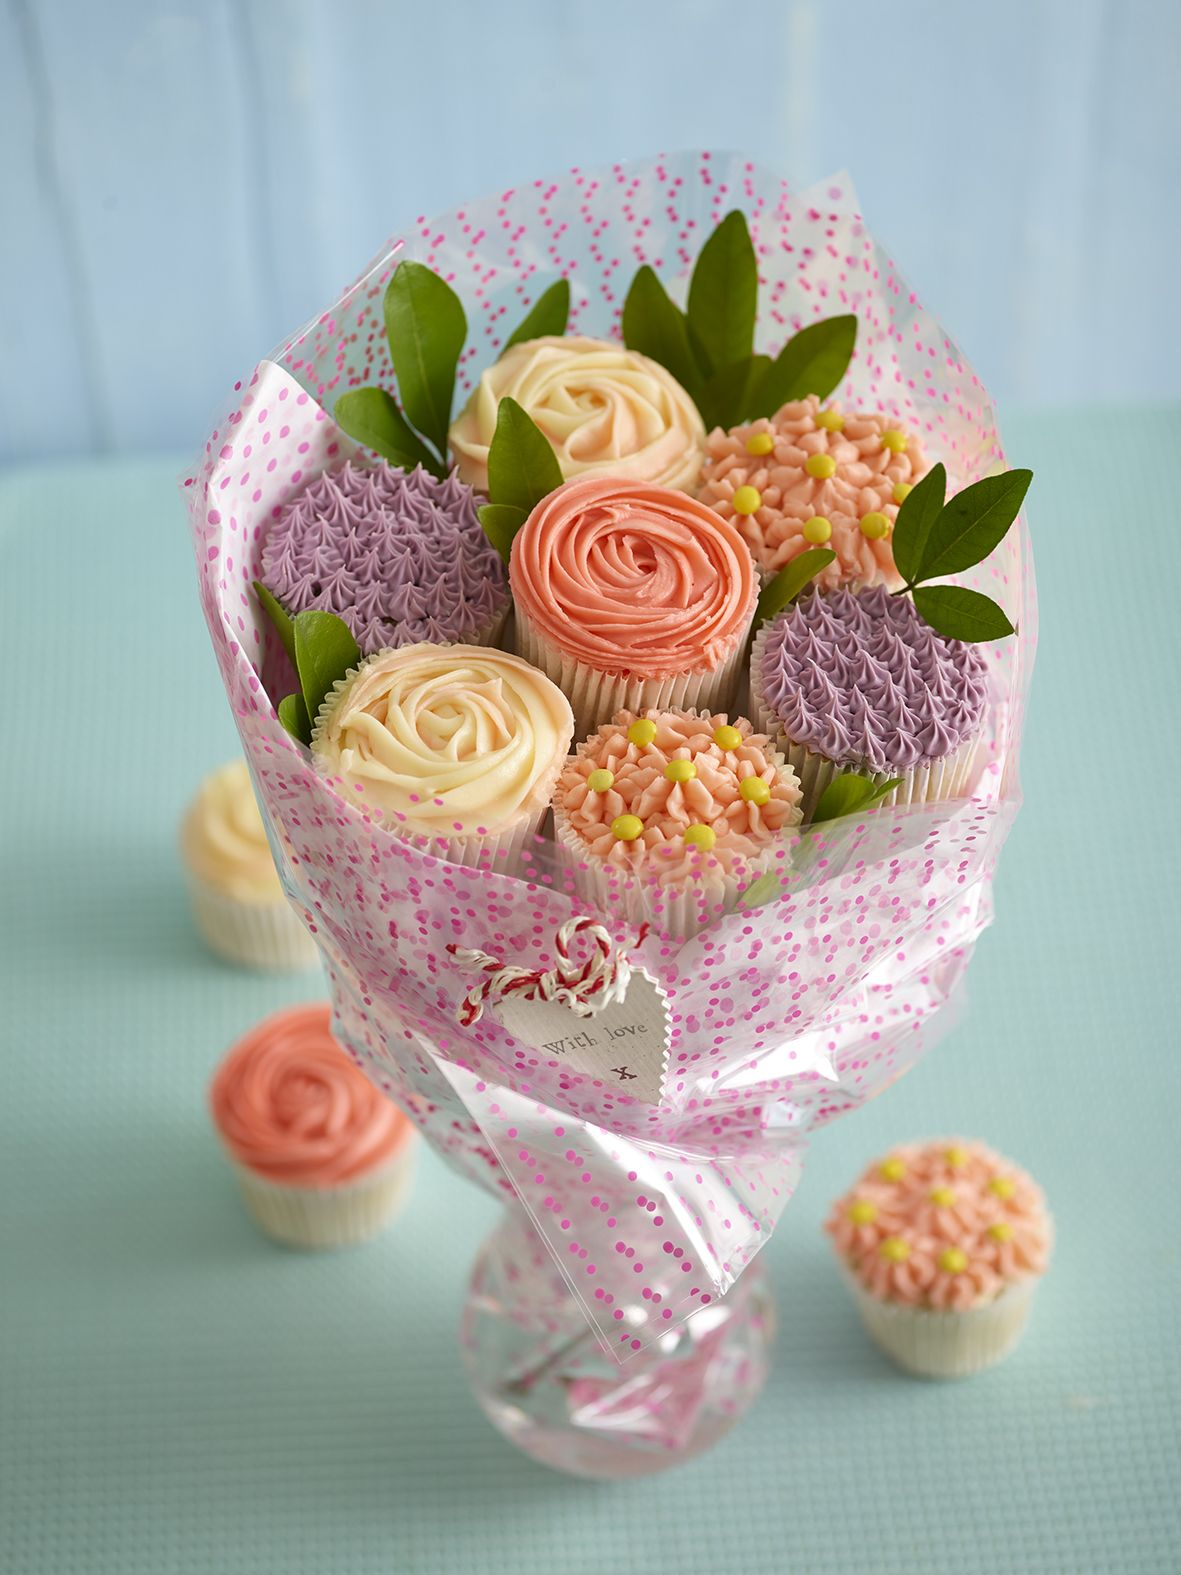 Cupcake bouquet pinterest cake cup cakes and cups cupcake bouquet izmirmasajfo